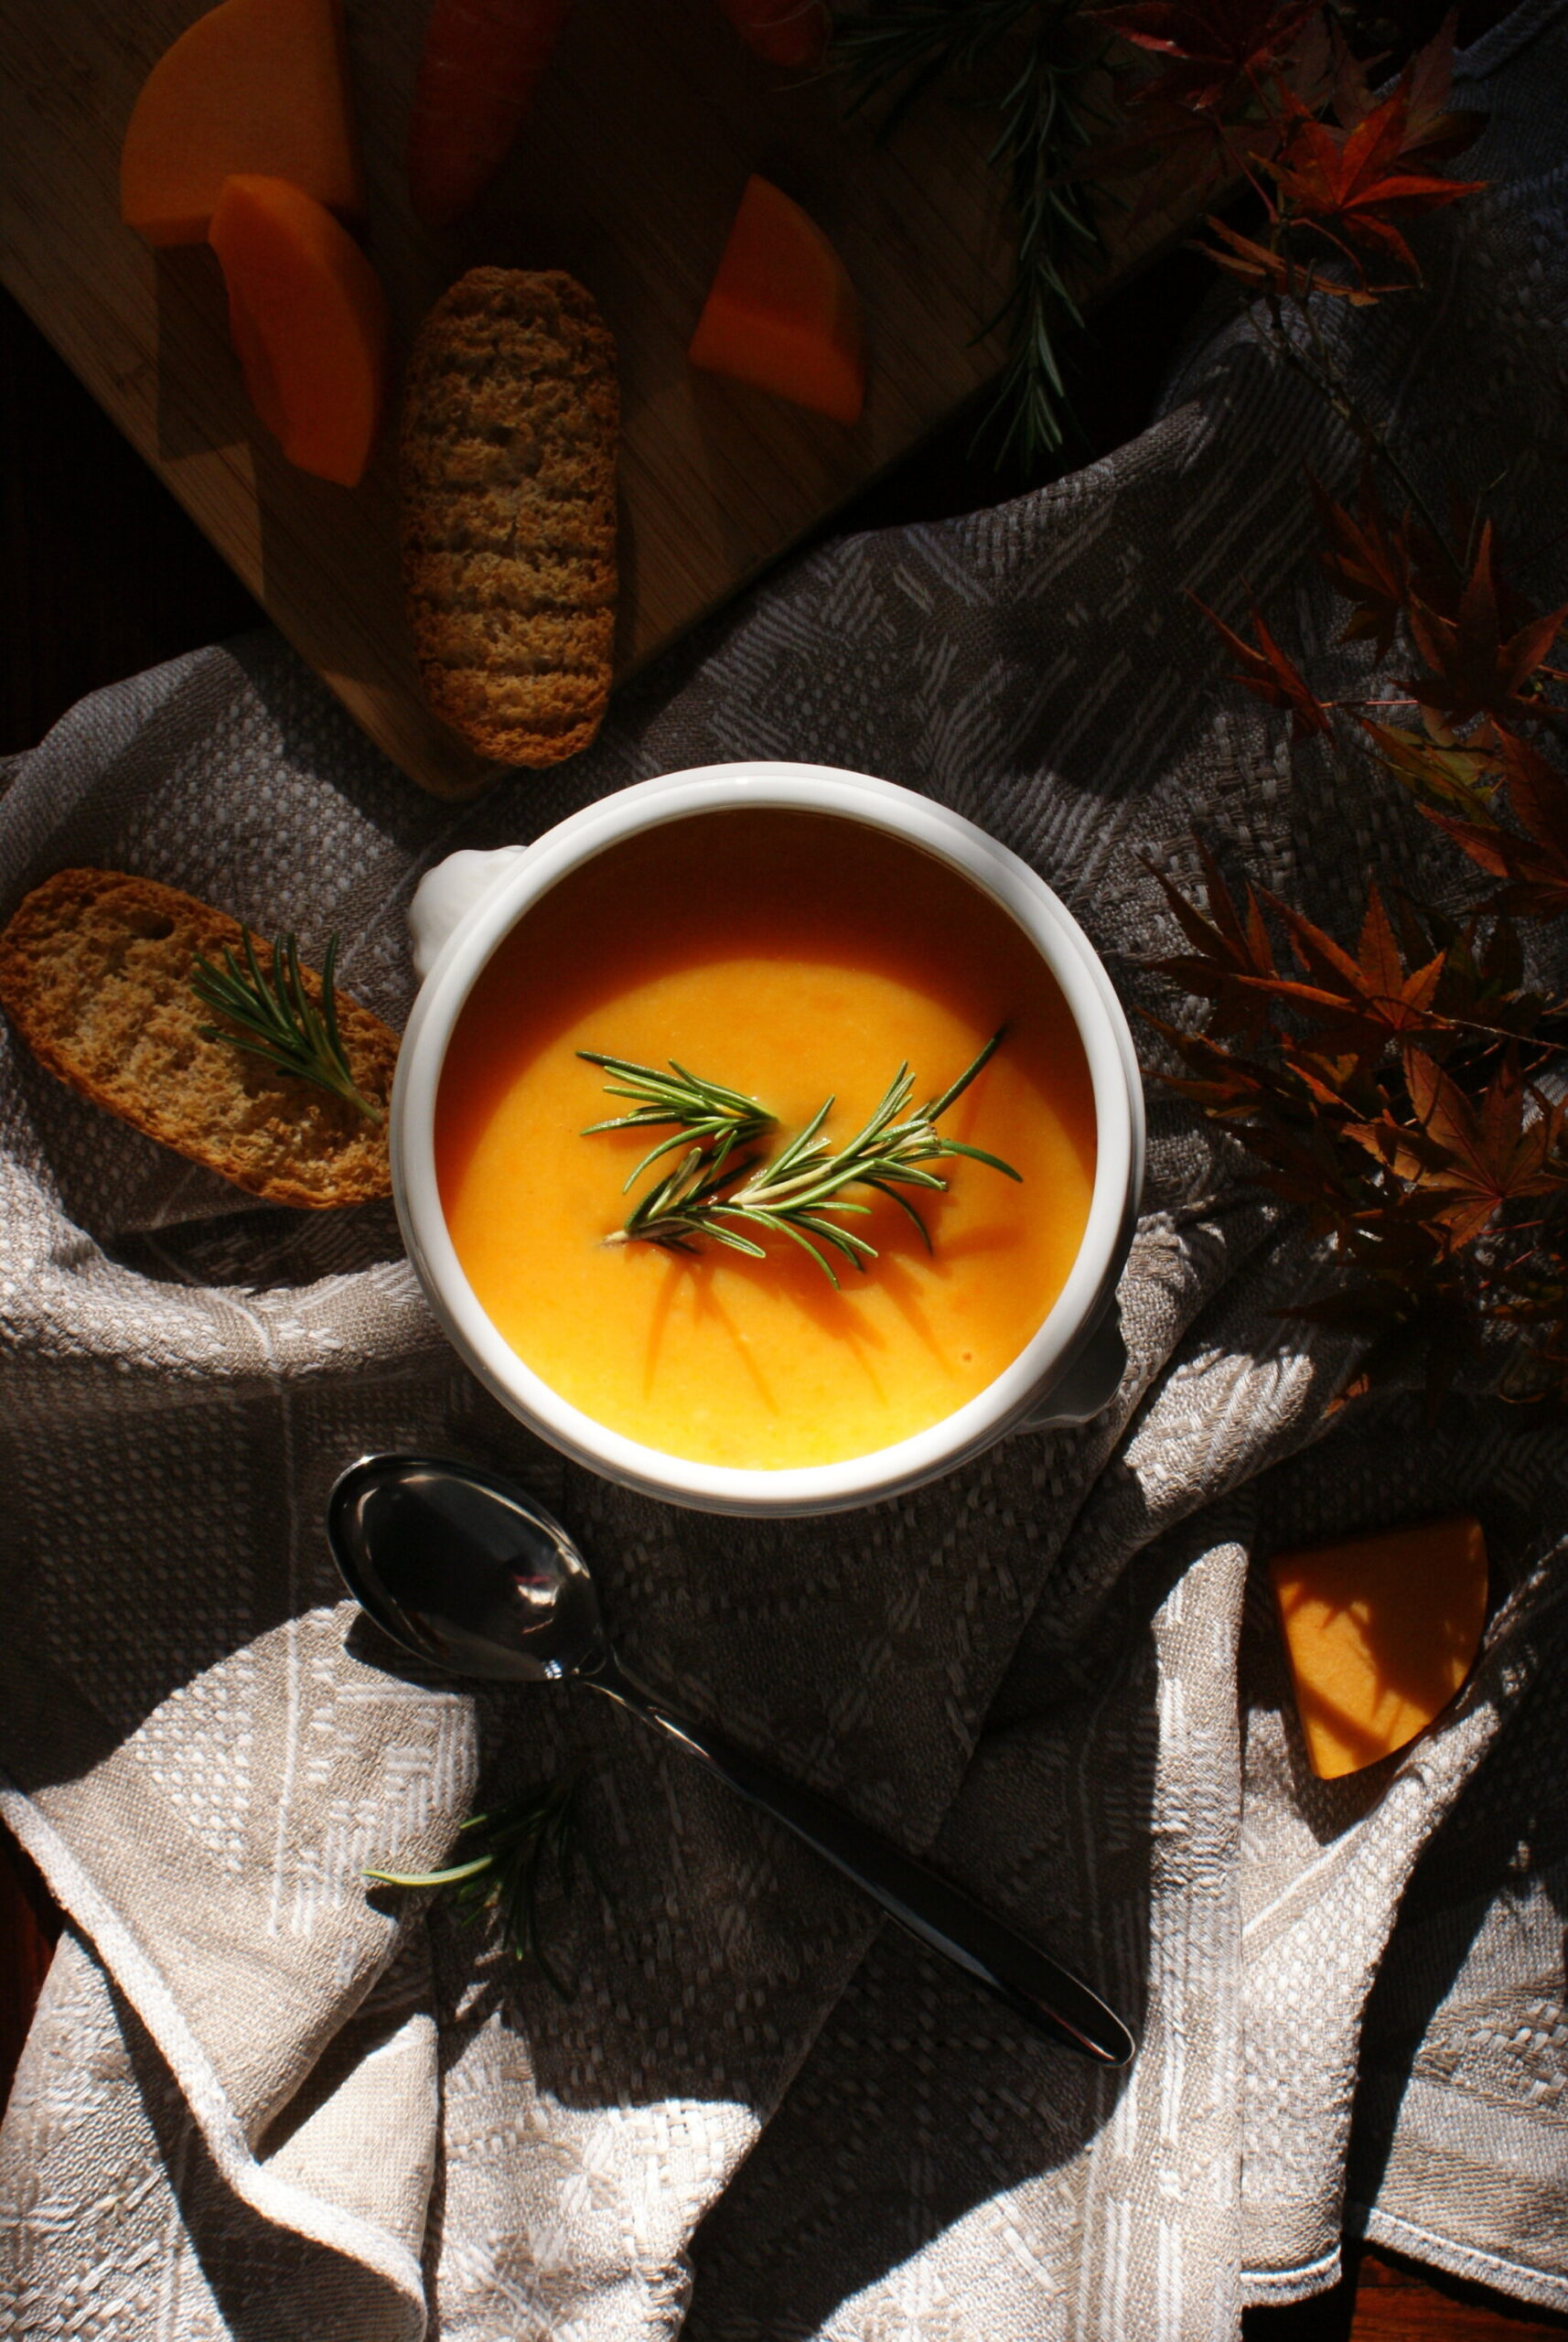 HOMEMADE PUMPKIN, POTATO AND CARROT SOUP RECIPE: THE EASY & QUICK IDEA FOR FALL & WINTER MEALS